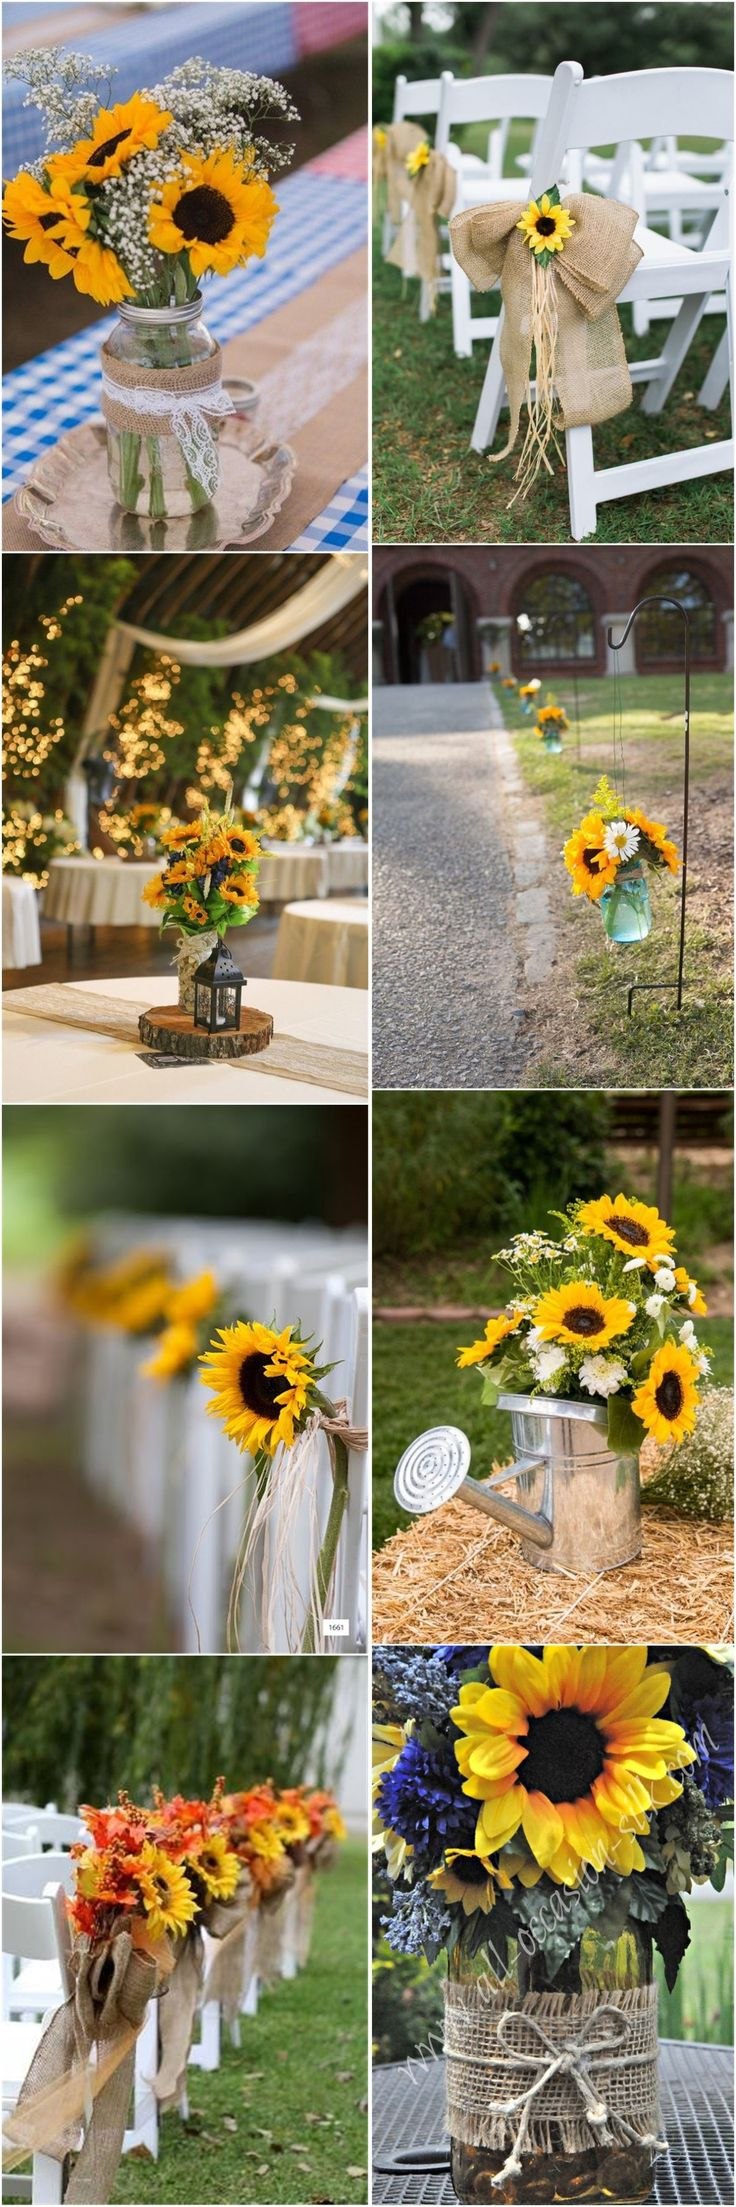 Best 25 sunflower weddings ideas on pinterest red wedding 23 bright sunflower wedding decoration ideas for your rustic wedding junglespirit Gallery